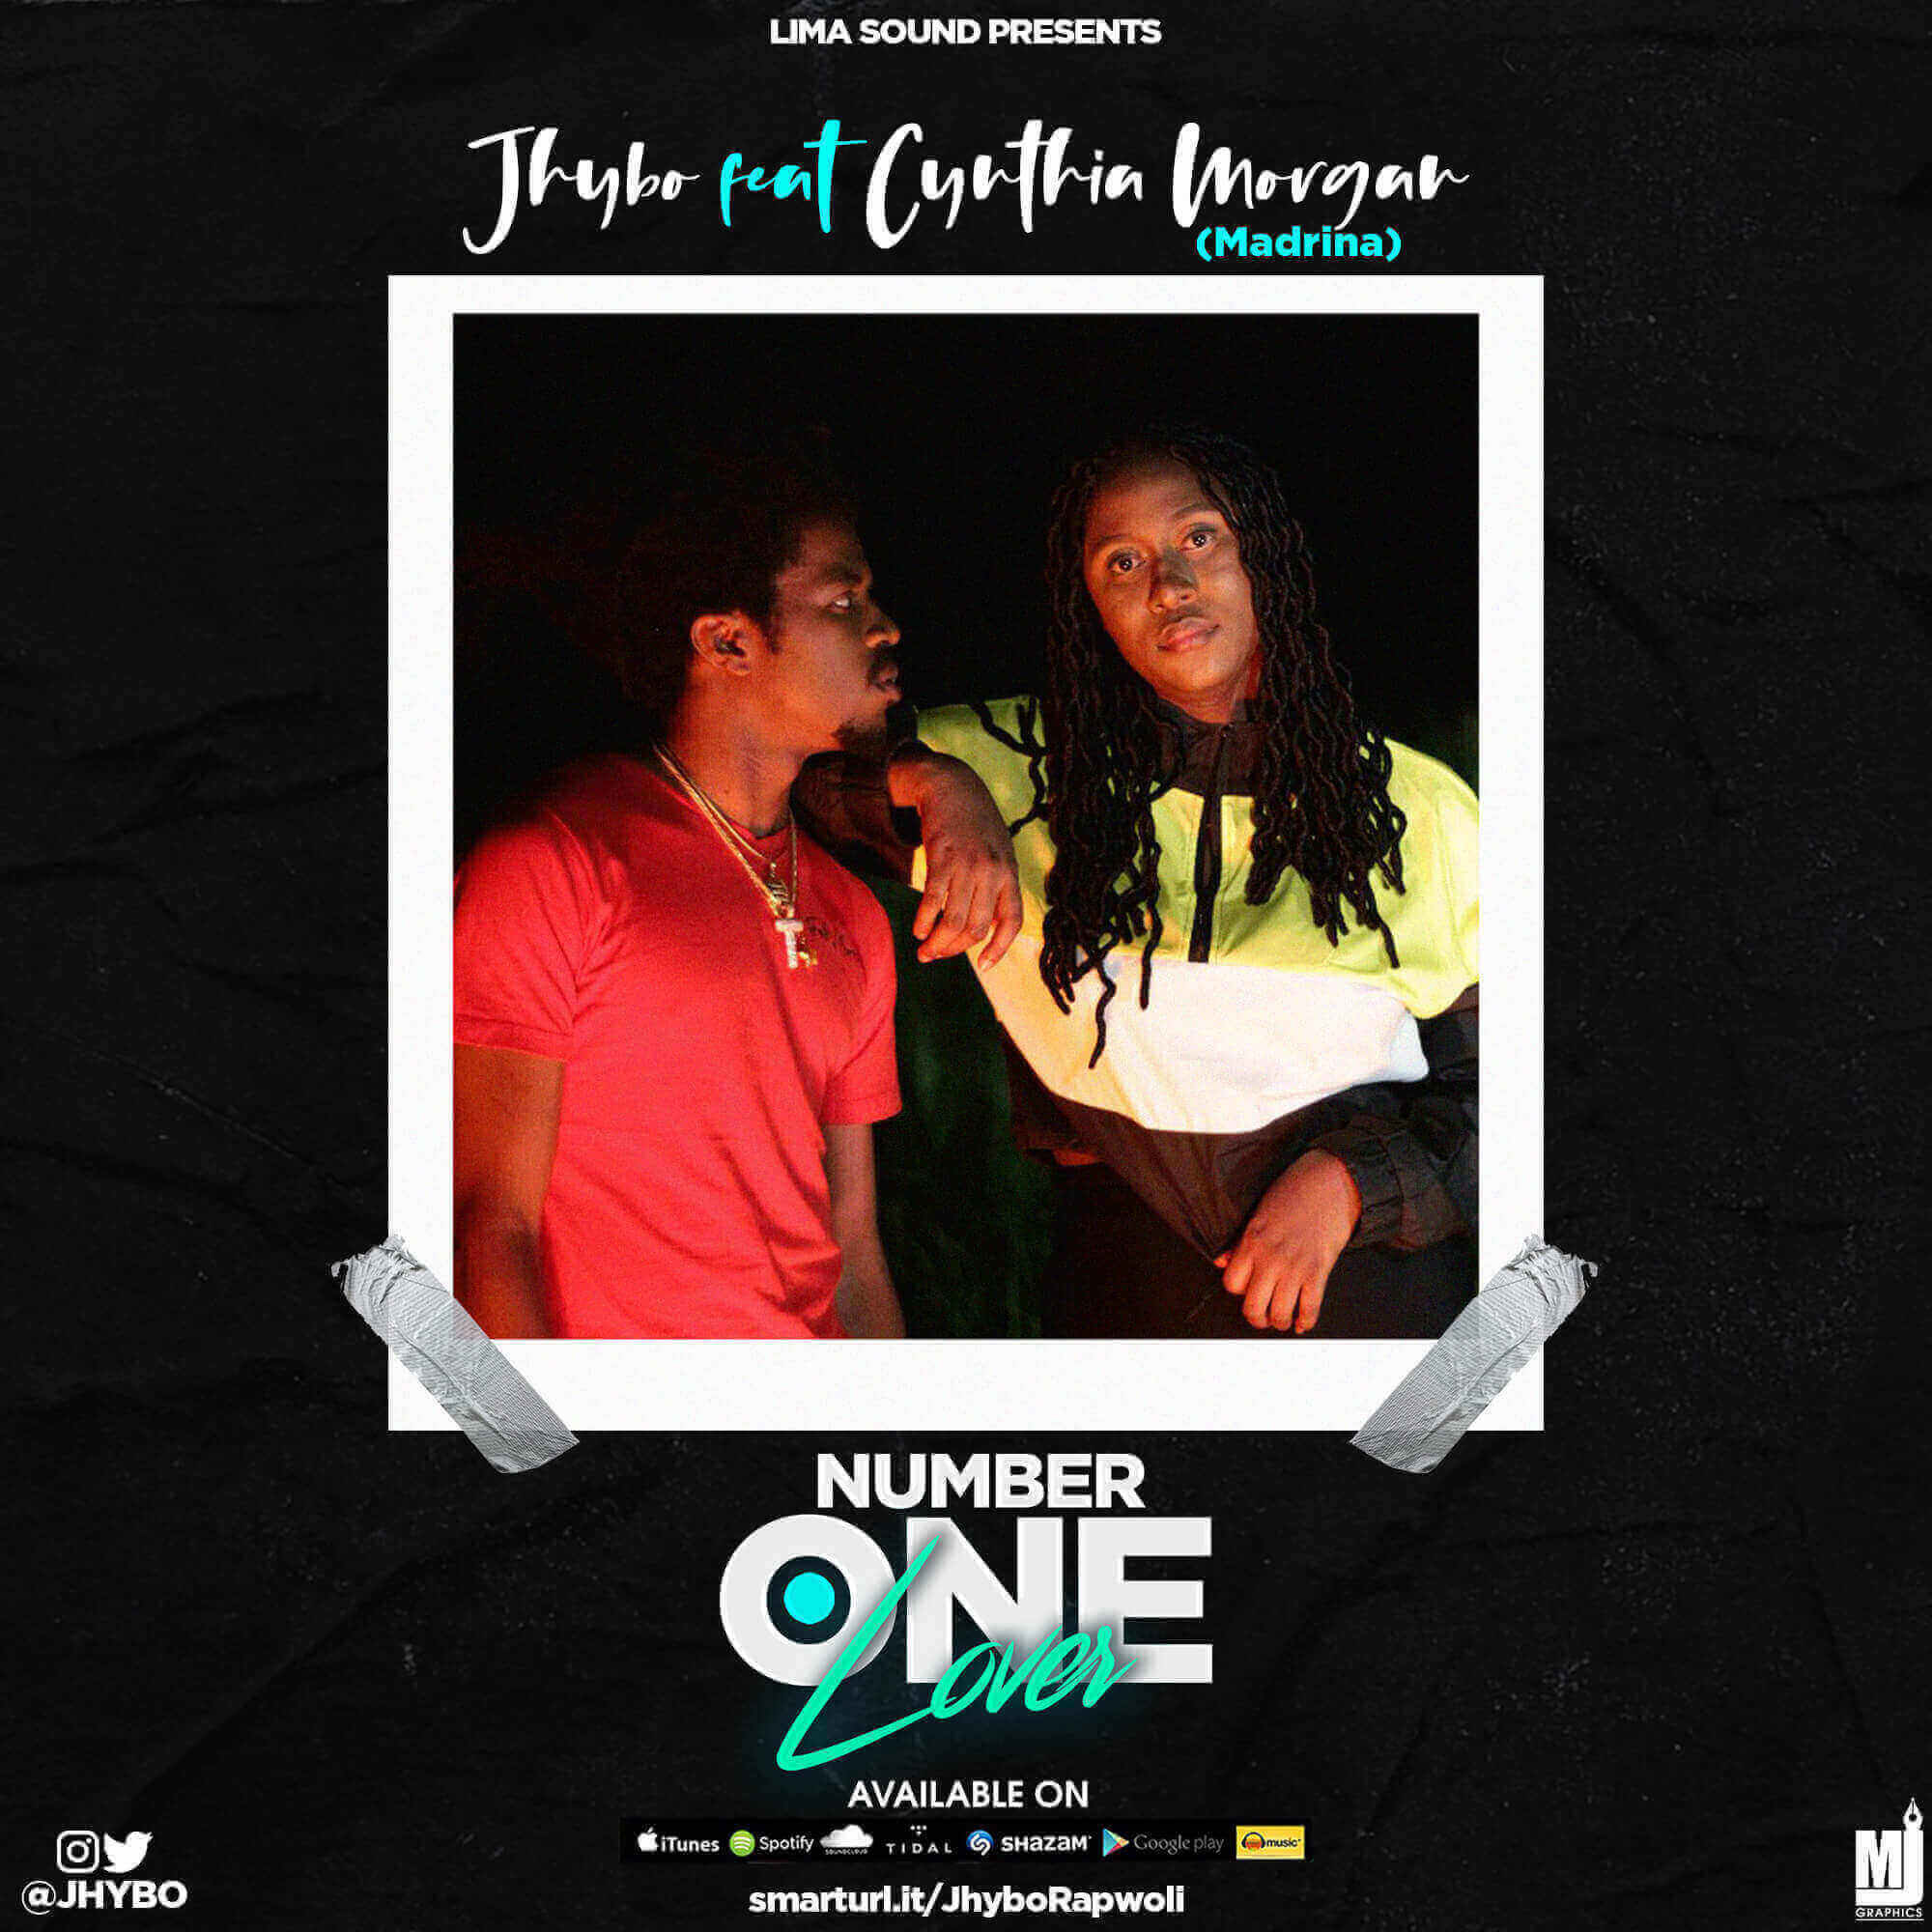 Jhybo - Number One Lover ft. Cynthia Morgan